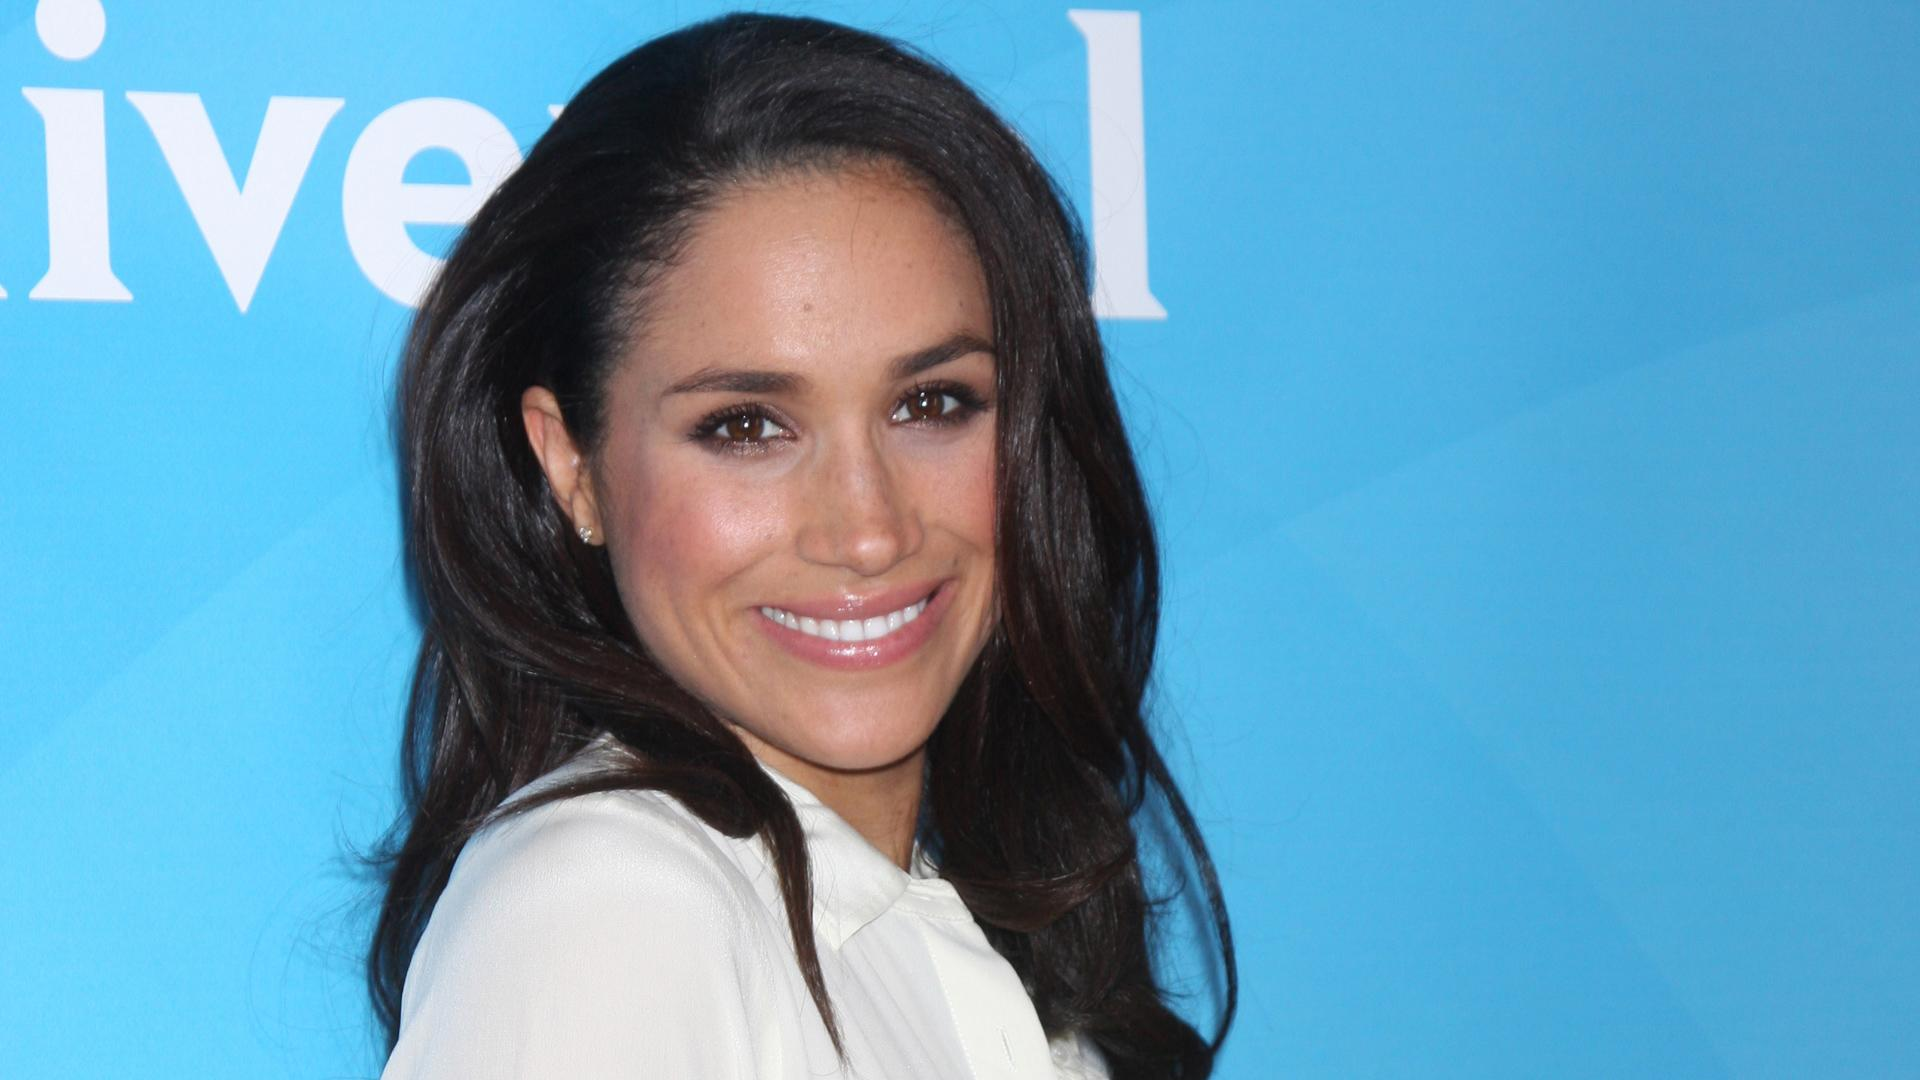 Meghan Markle, Half of a Financially Fit Power Couple, Is Now Worth $50 Million or More